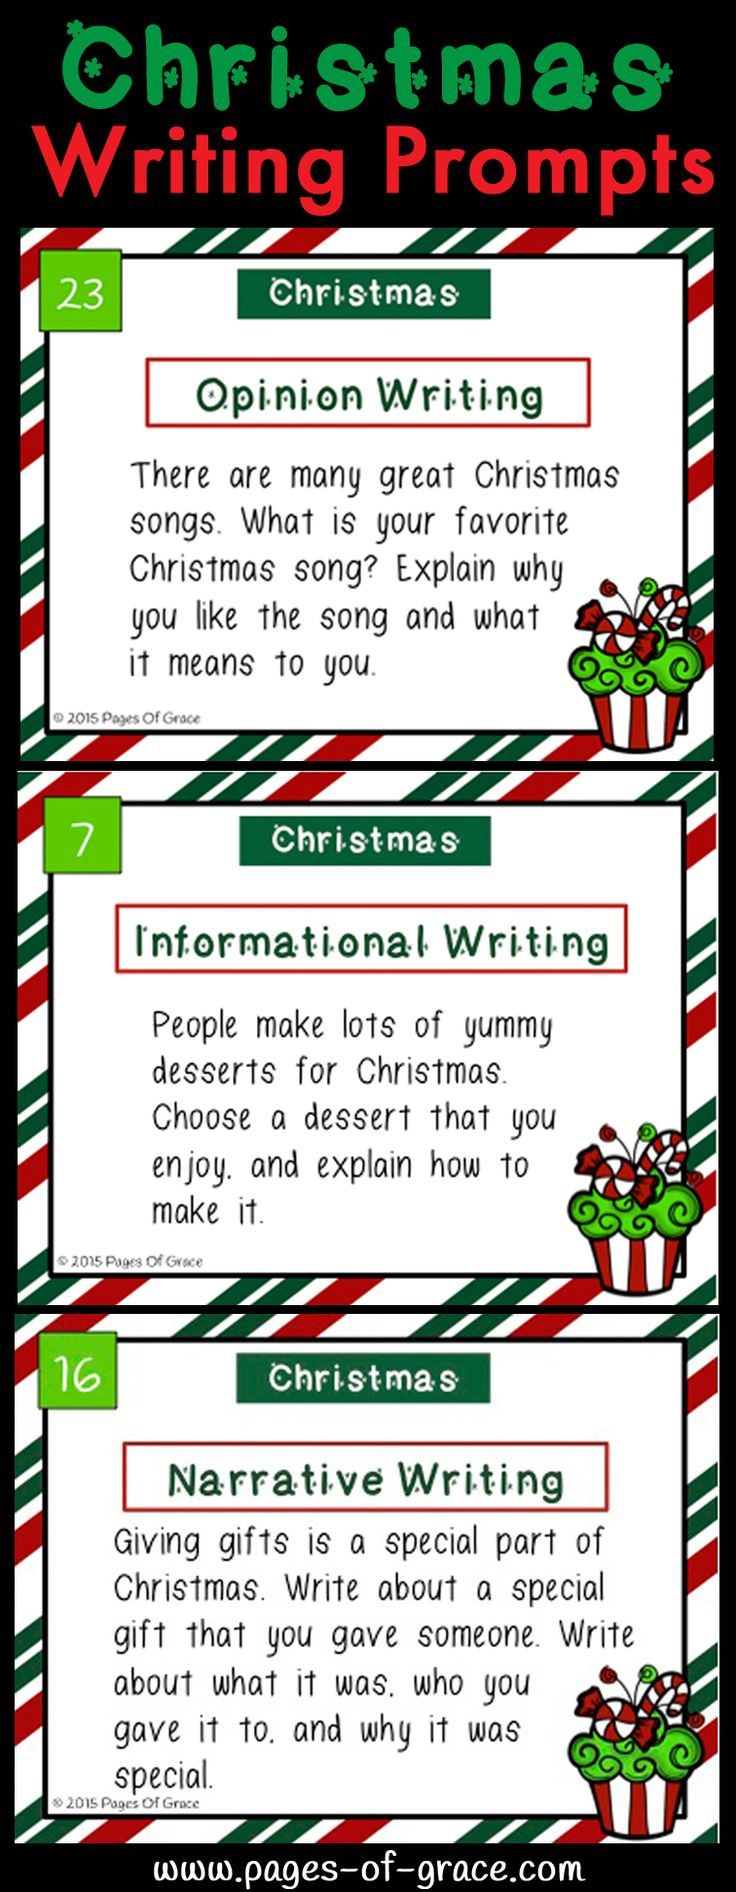 Great set of Christmas writing prompts! 8 fun writing prompts each for Opinion, Informational, & Narrative writing. This is a great way to tie in some Christmas fun without losing valuable teaching time!